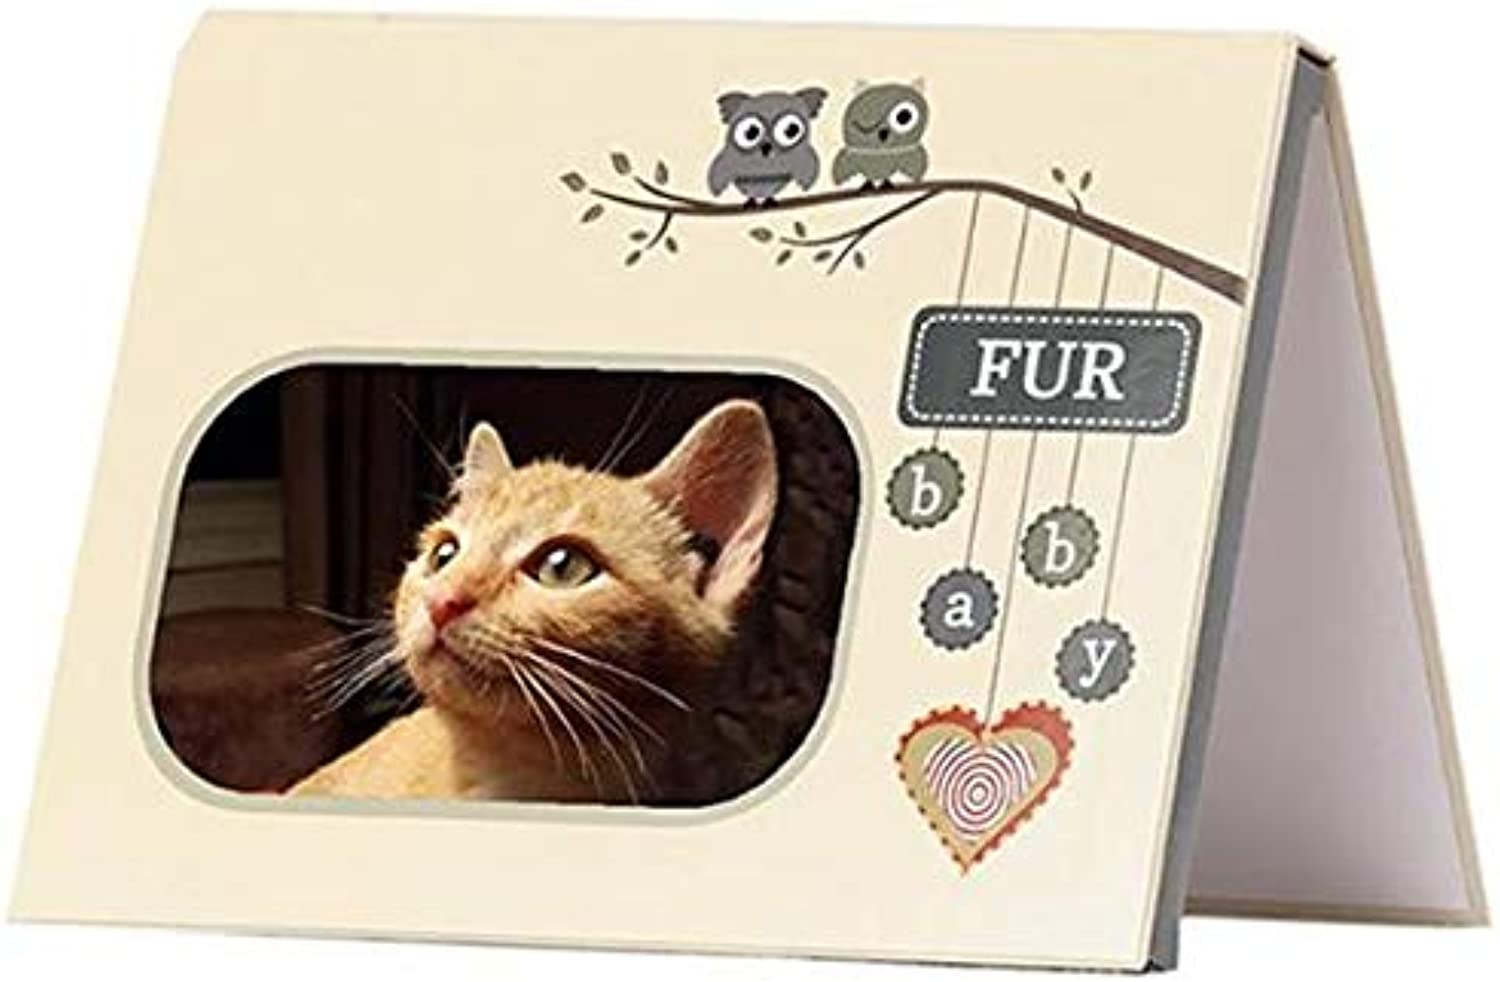 MY BABY'S HEARTBEAT BEAR  Furbaby Cream Picture Frame  20 Second Recording of Your Pet purring or Barking for Keepsake  Cream Furbaby Frame (Cream Frame)